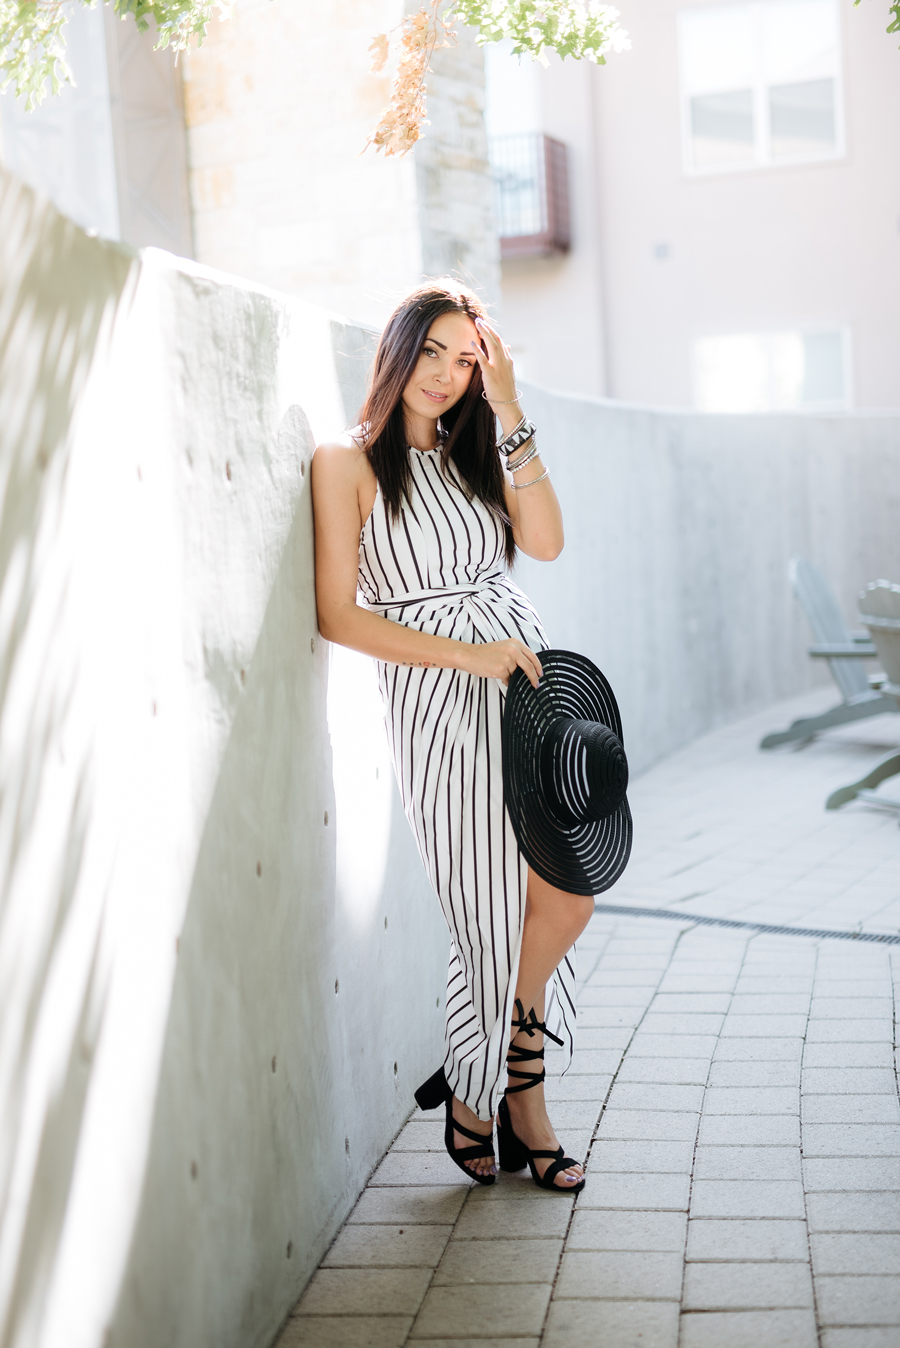 FTT-ZAFUL-BLACK-WHITE-STRIPES-SUMMER-CHIC-6